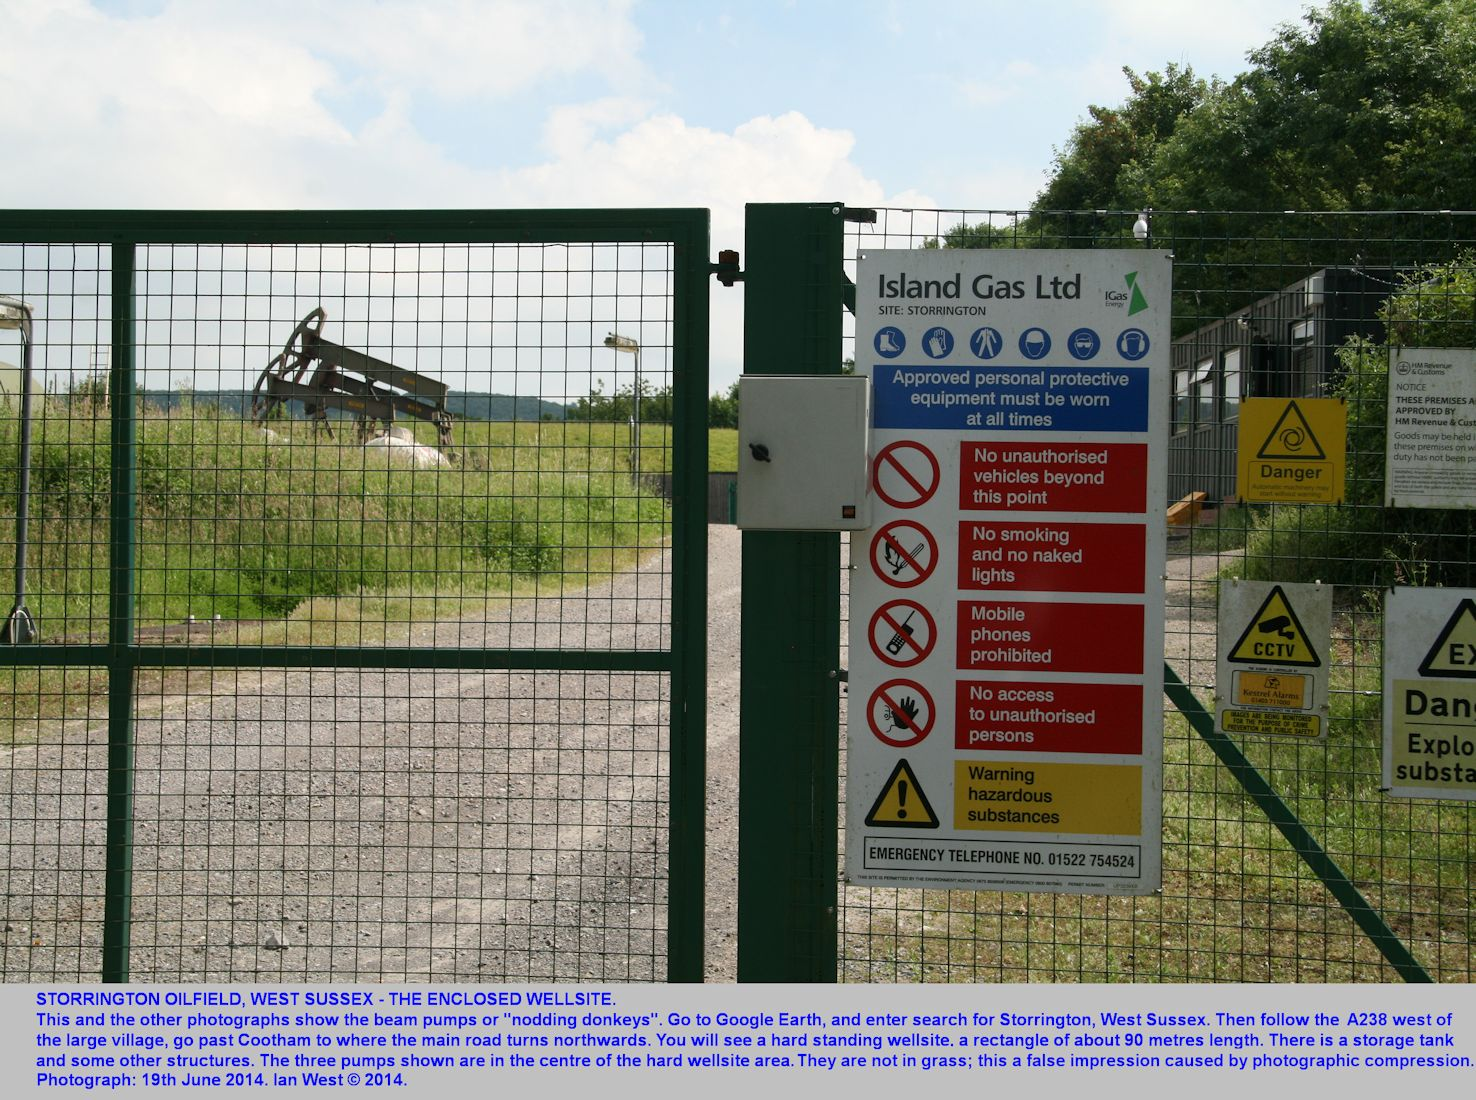 The IGAS oil company notice at the Storrington wellsite, 19th June 2014